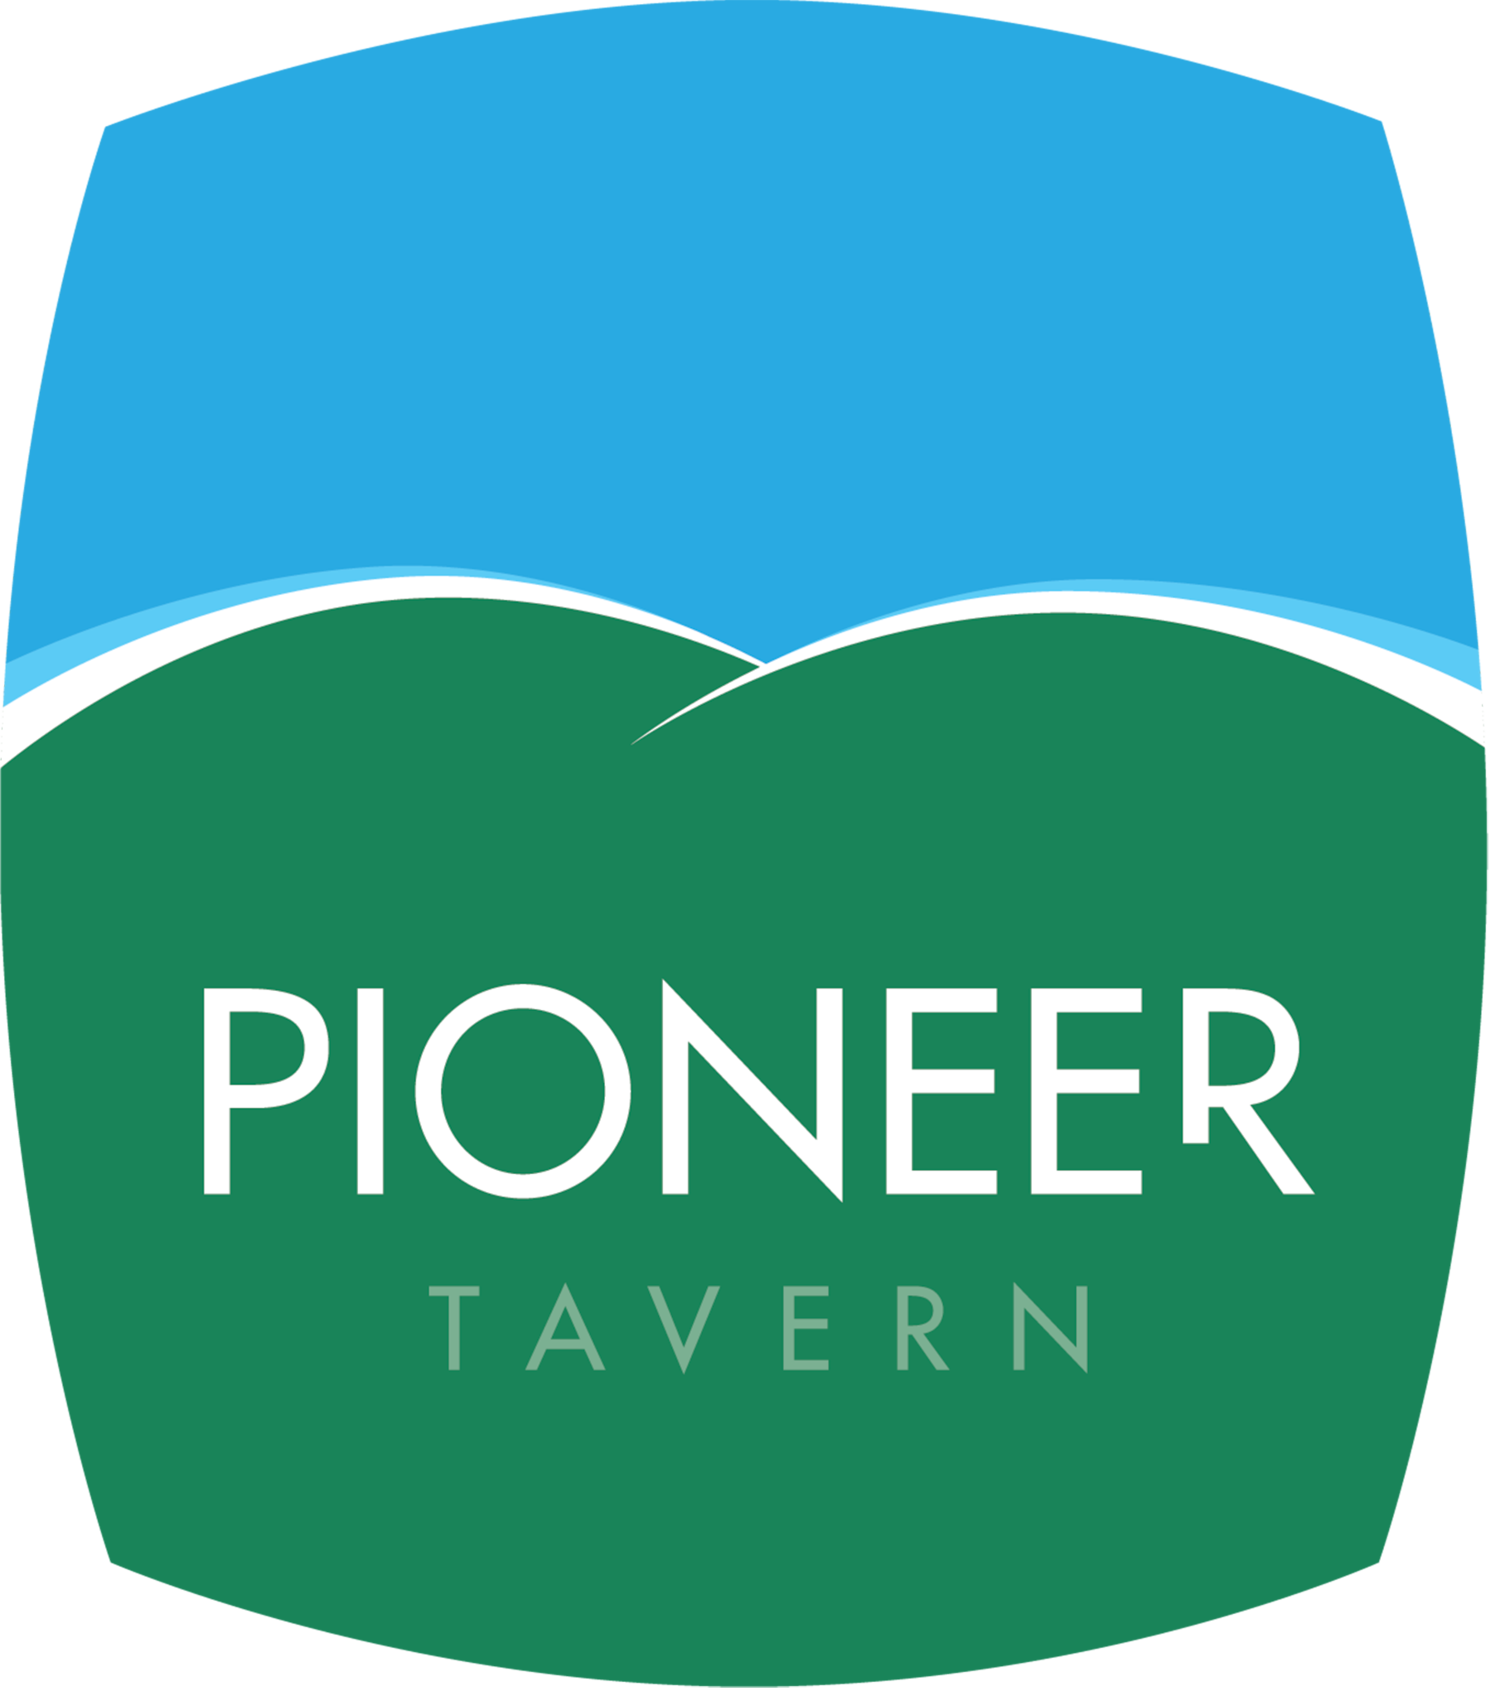 Pioneer Tavern, Penrith, NSW